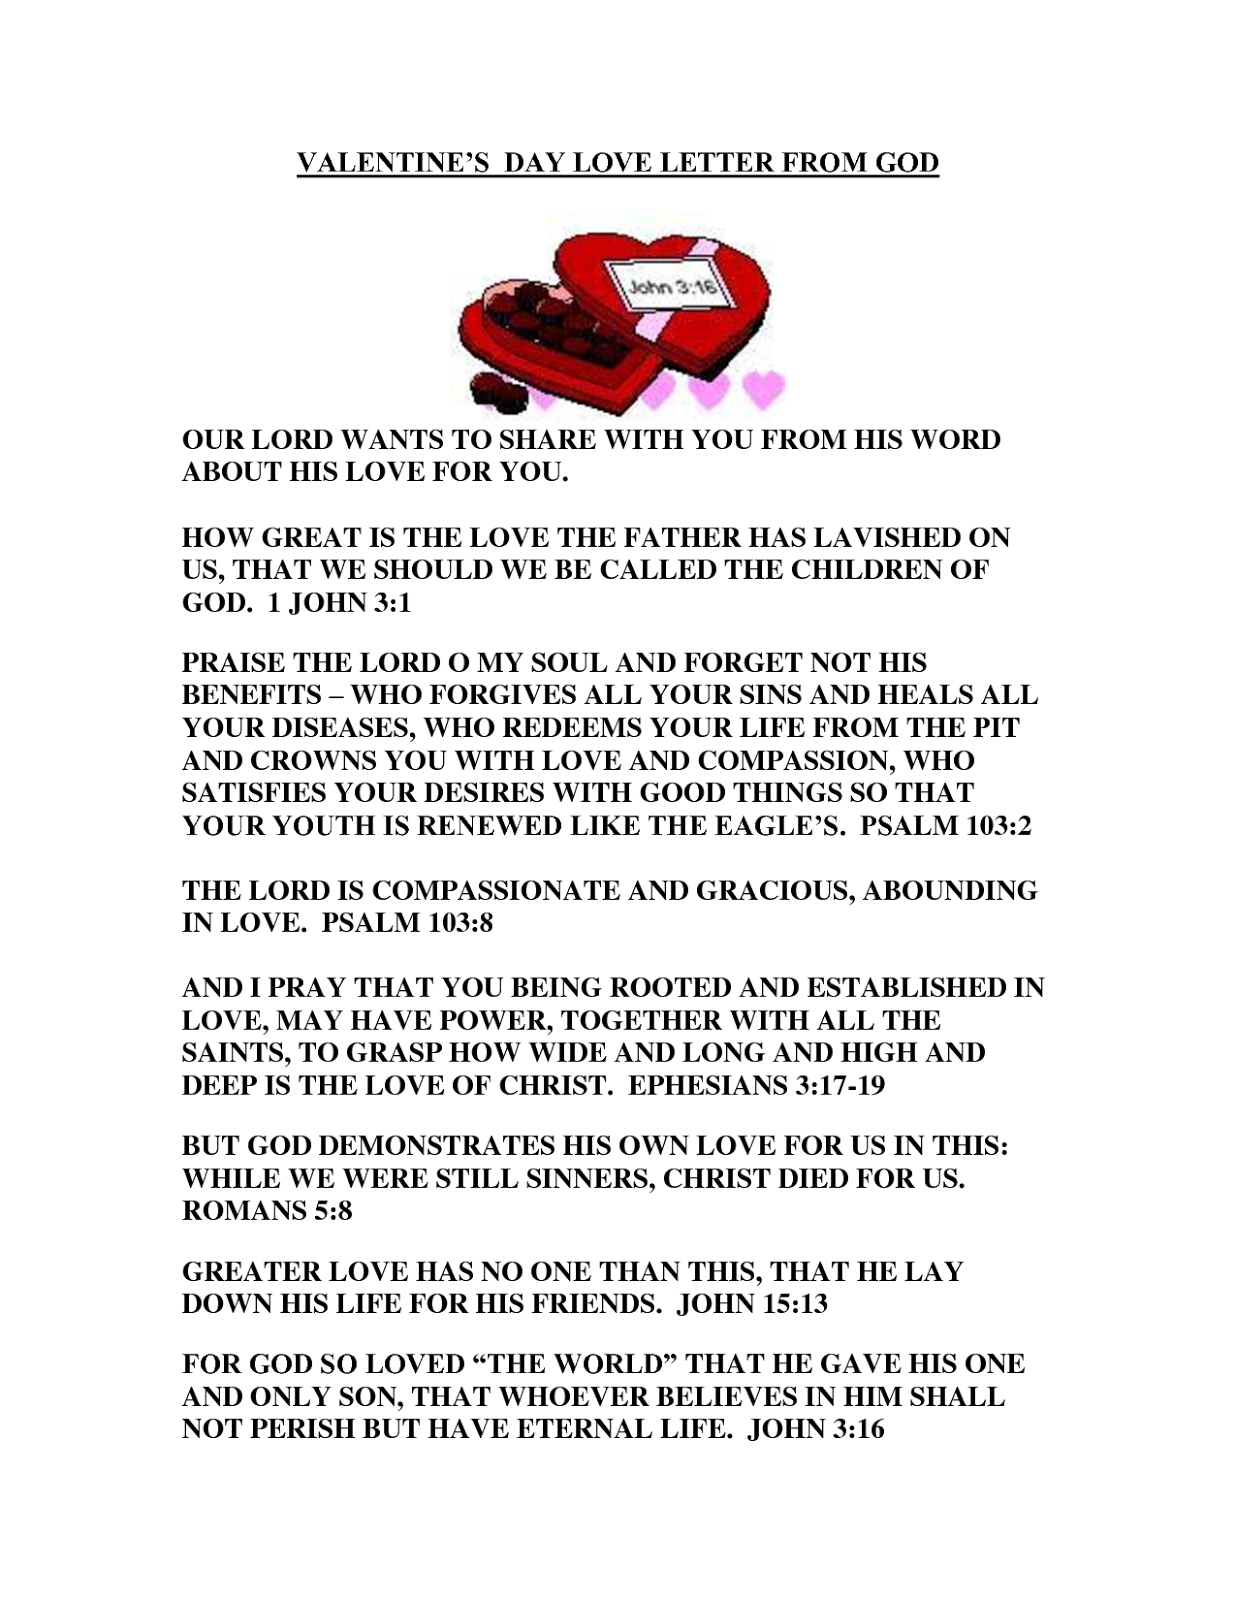 find and search thousands of free love letters from all over the world